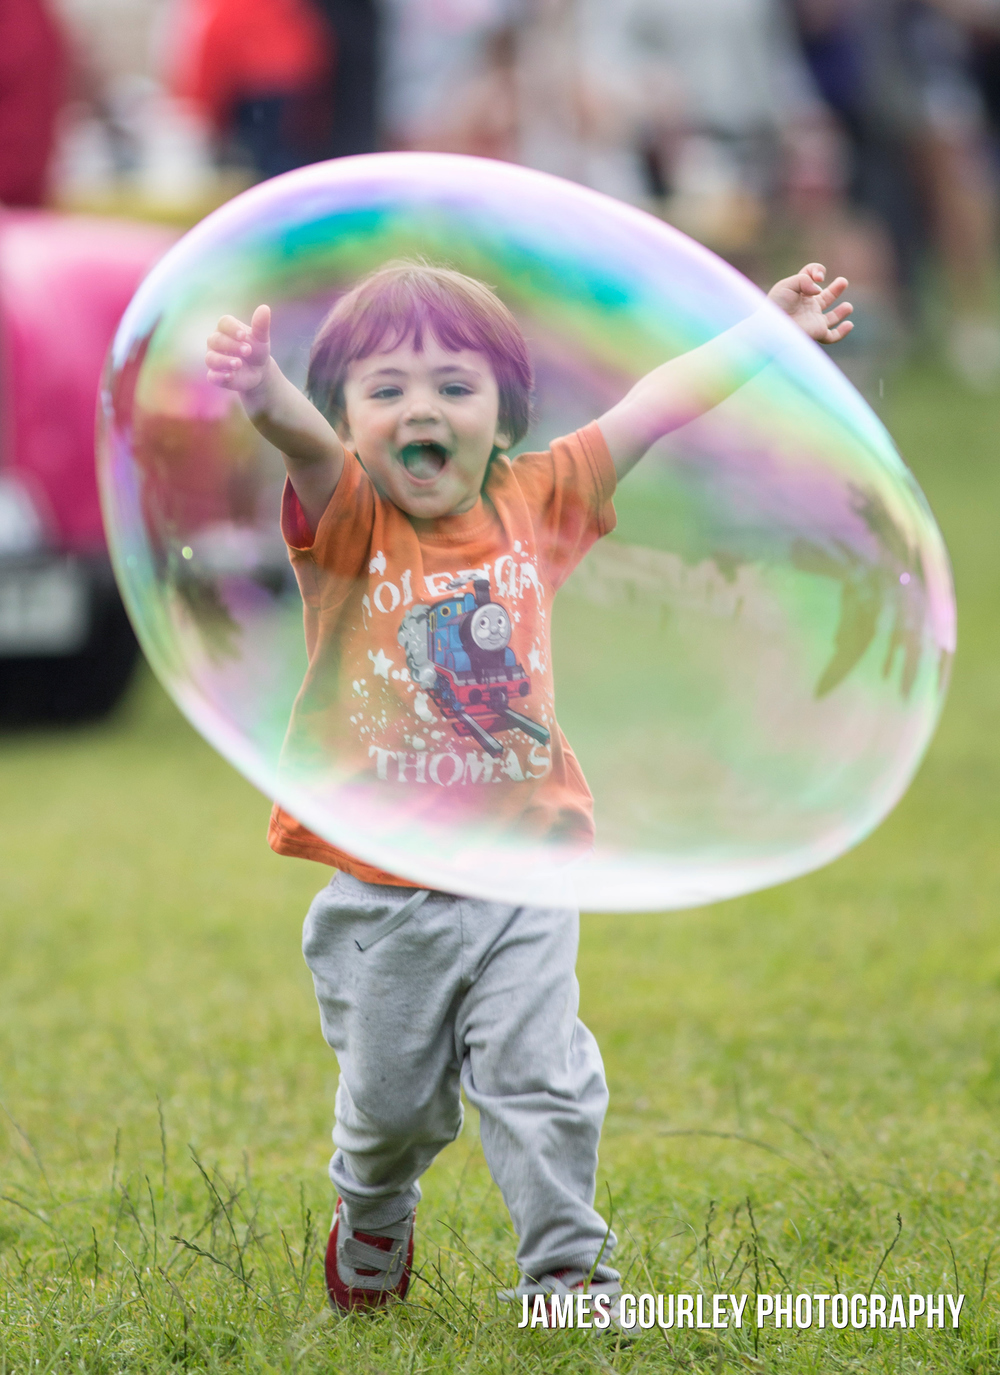 A child plays with bubbles at the Isle of Wight Festival 2015.